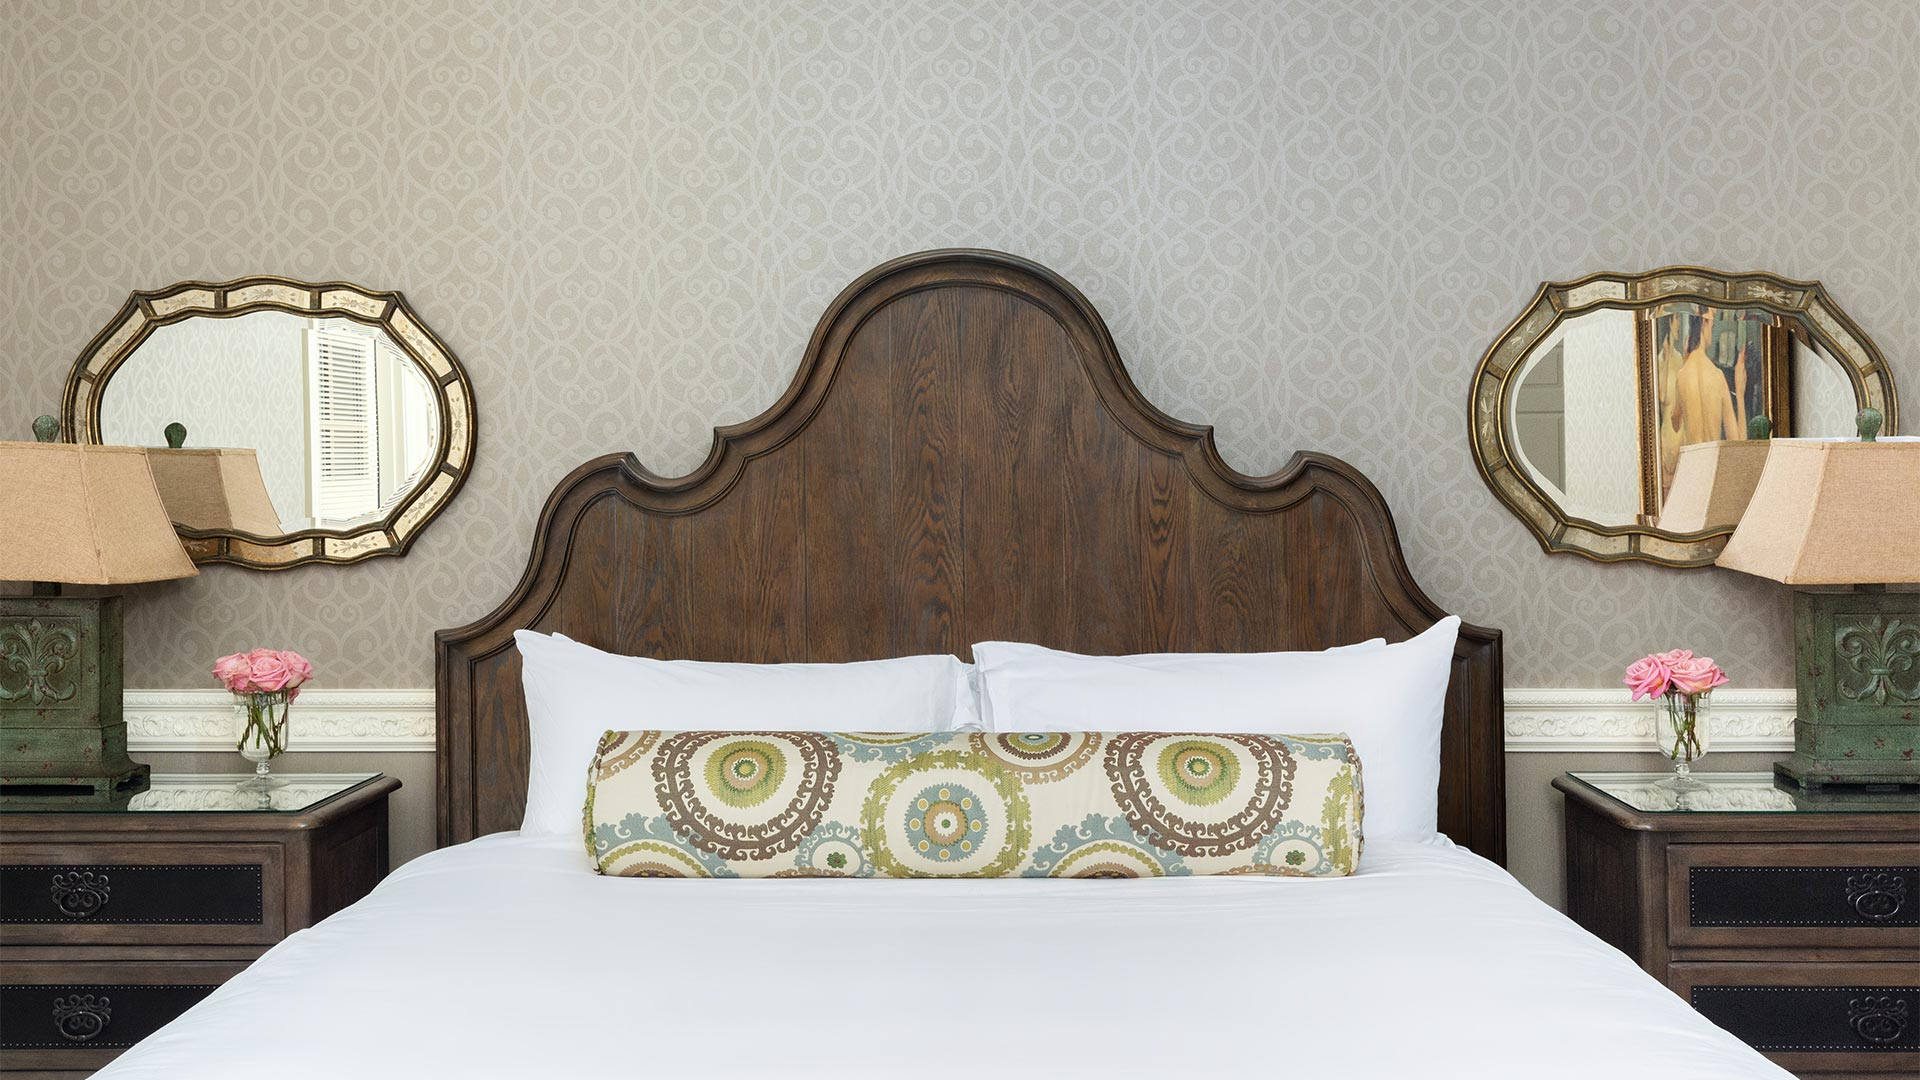 detail shot of the bed in the second room. There is a wooden headboard with a green patterned pillow. There are bed side tables on either side of the bed.